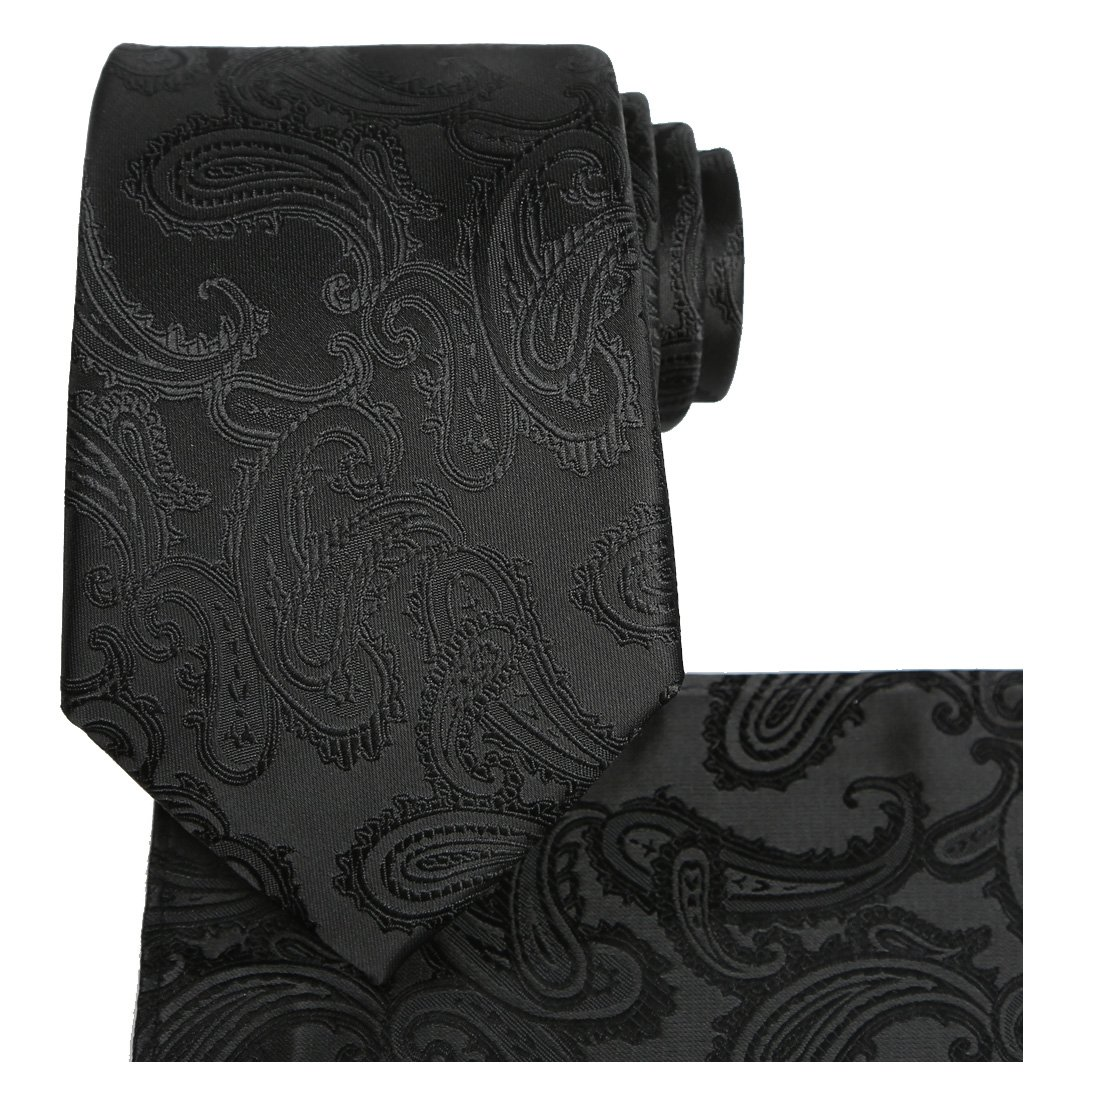 KissTies Extra Long Tie Set: Black Paisley Necktie + Hanky + Gift Box (63'' XL) by KissTies (Image #1)